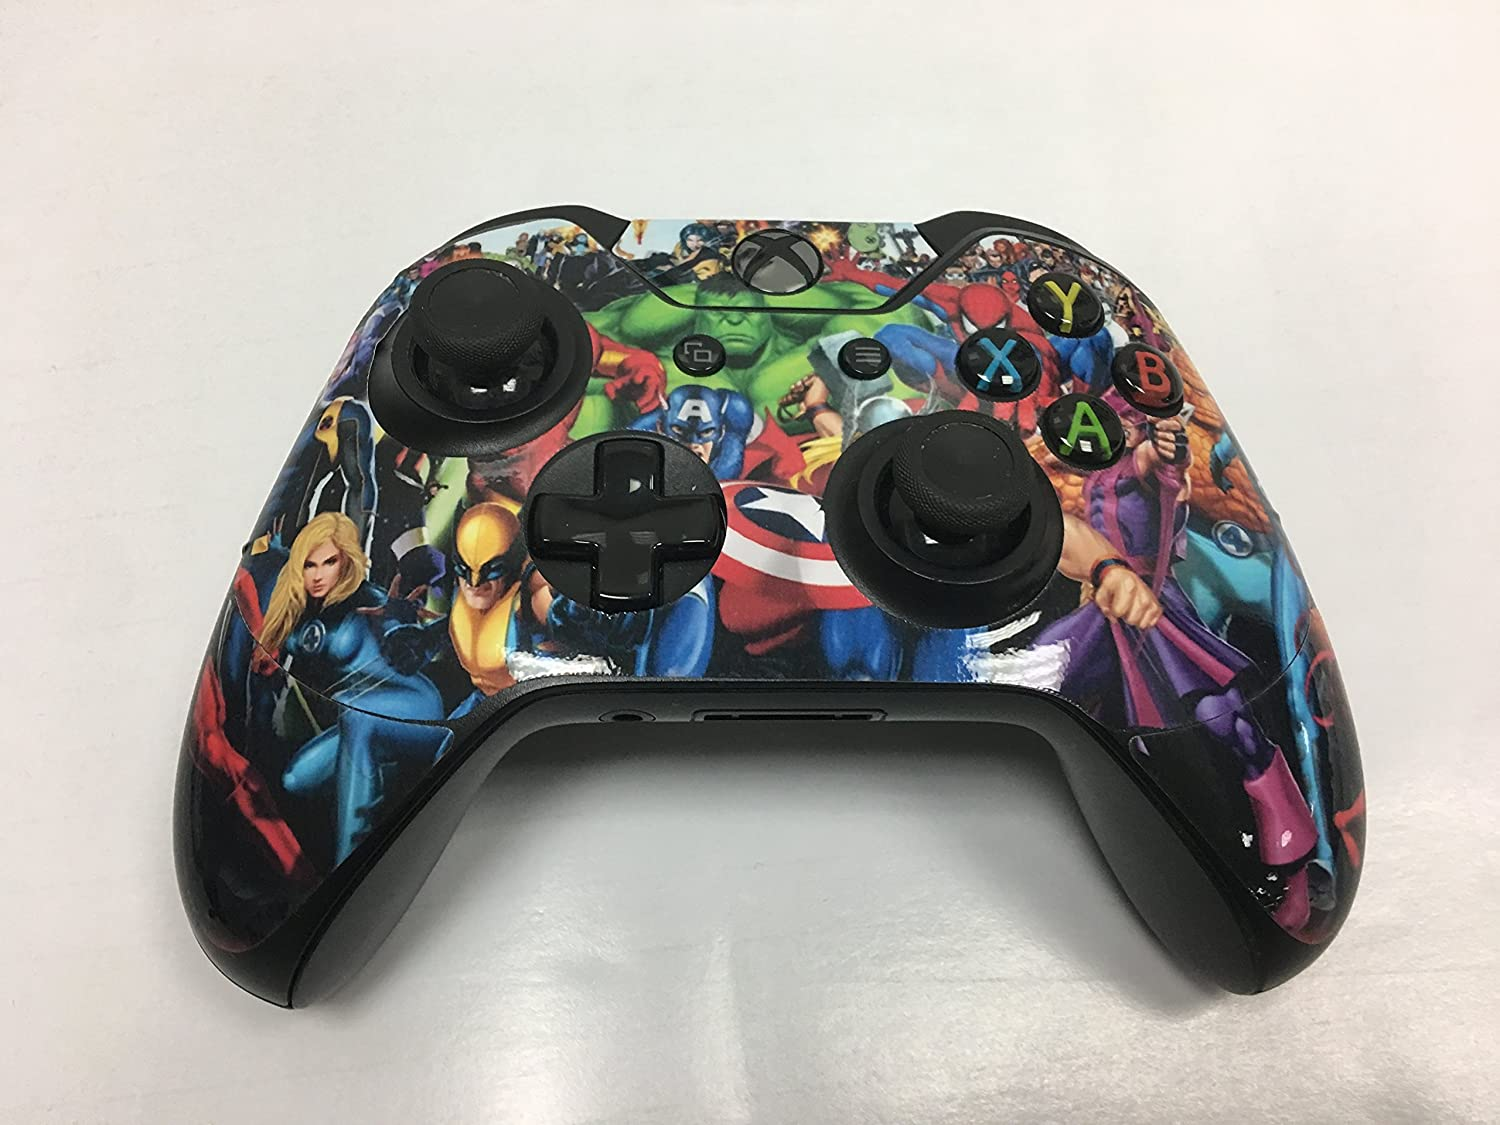 giZmoZ n gadgetZ 2 x Spider Controller Skins Full Wrap Vinyl Sticker compatible with Xbox One//S//X